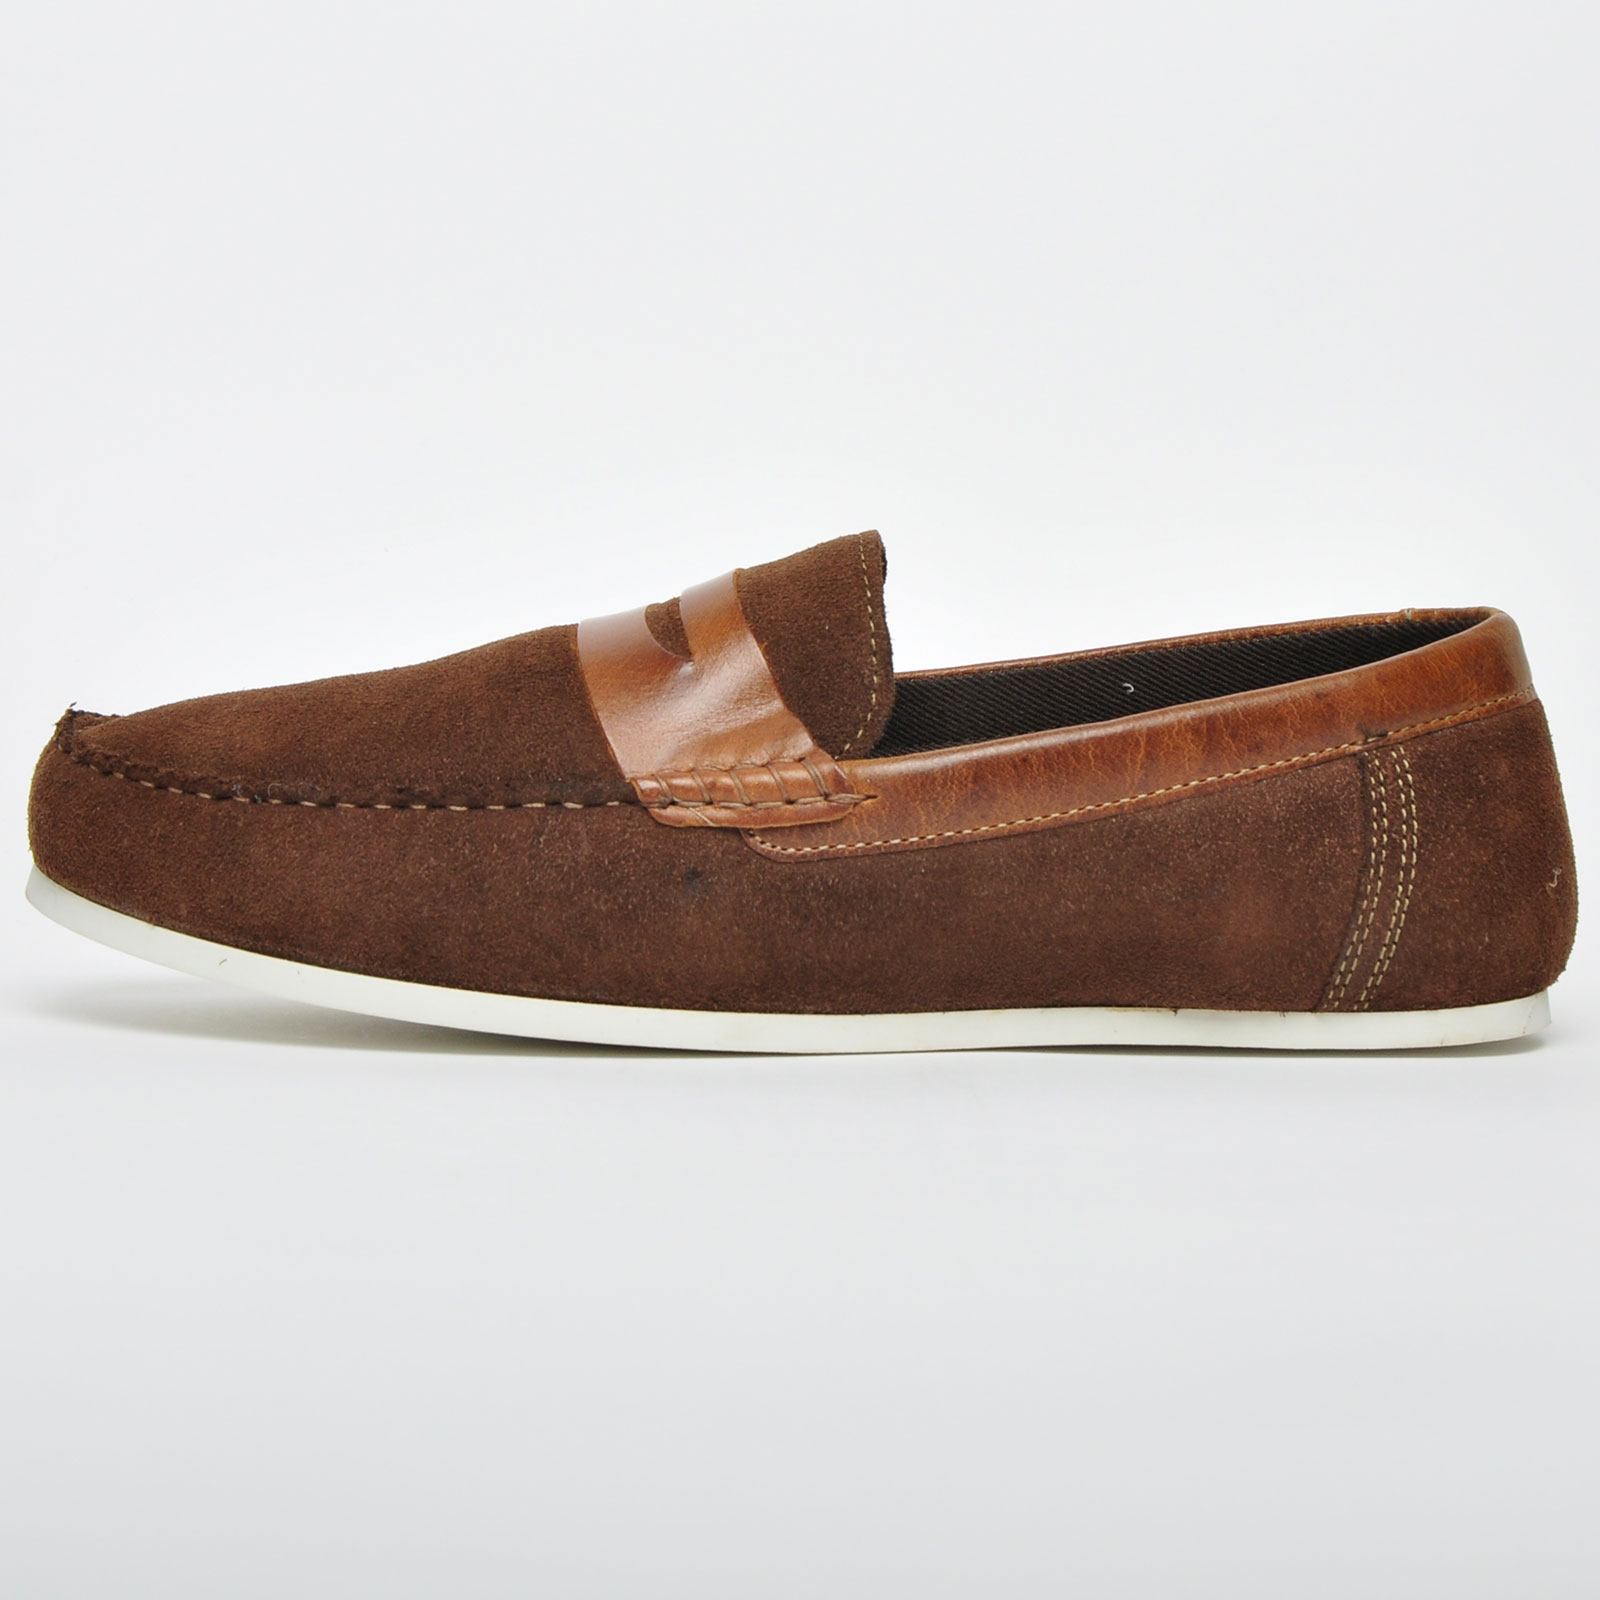 5f2e7486e Red Tape Wardon Men s Suede Leather Slip On Loafers Casual Shoes Brown